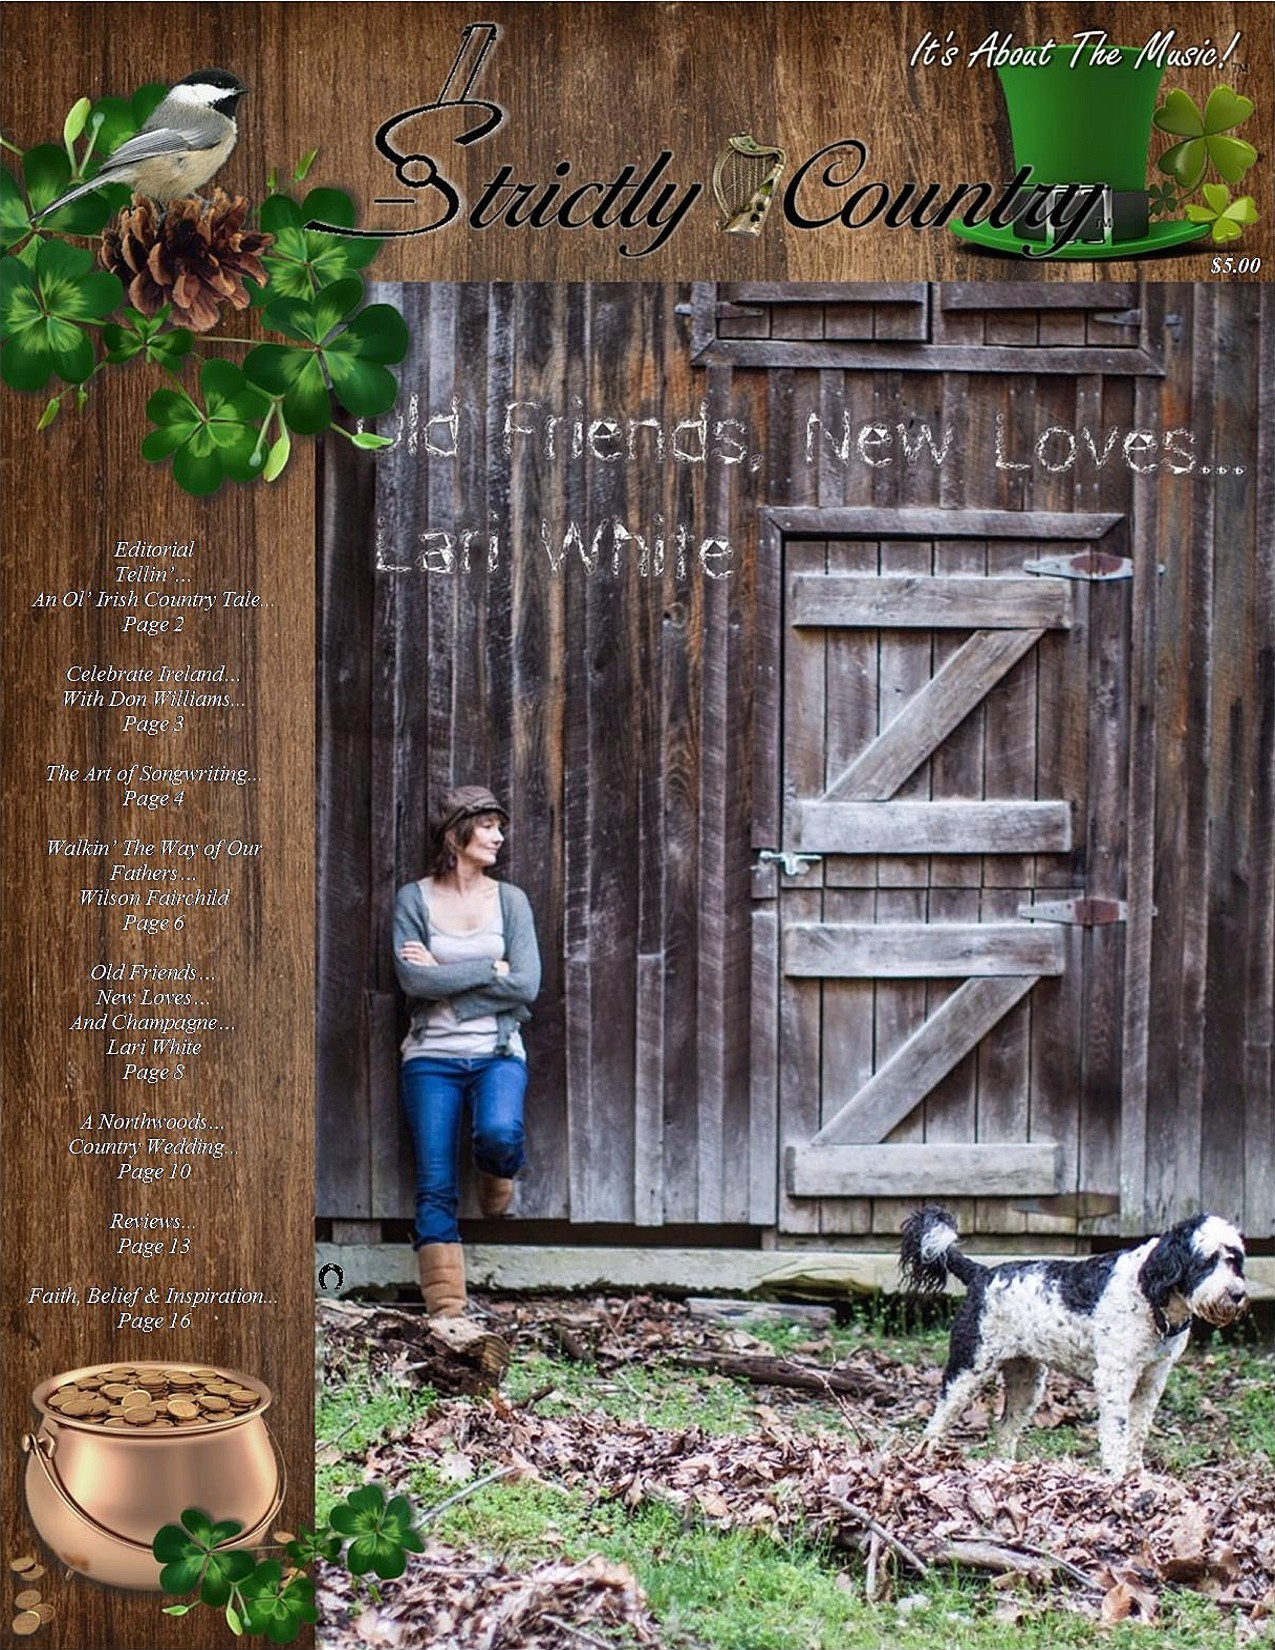 Strictly Country Magazine - Volume 24, Issue 2